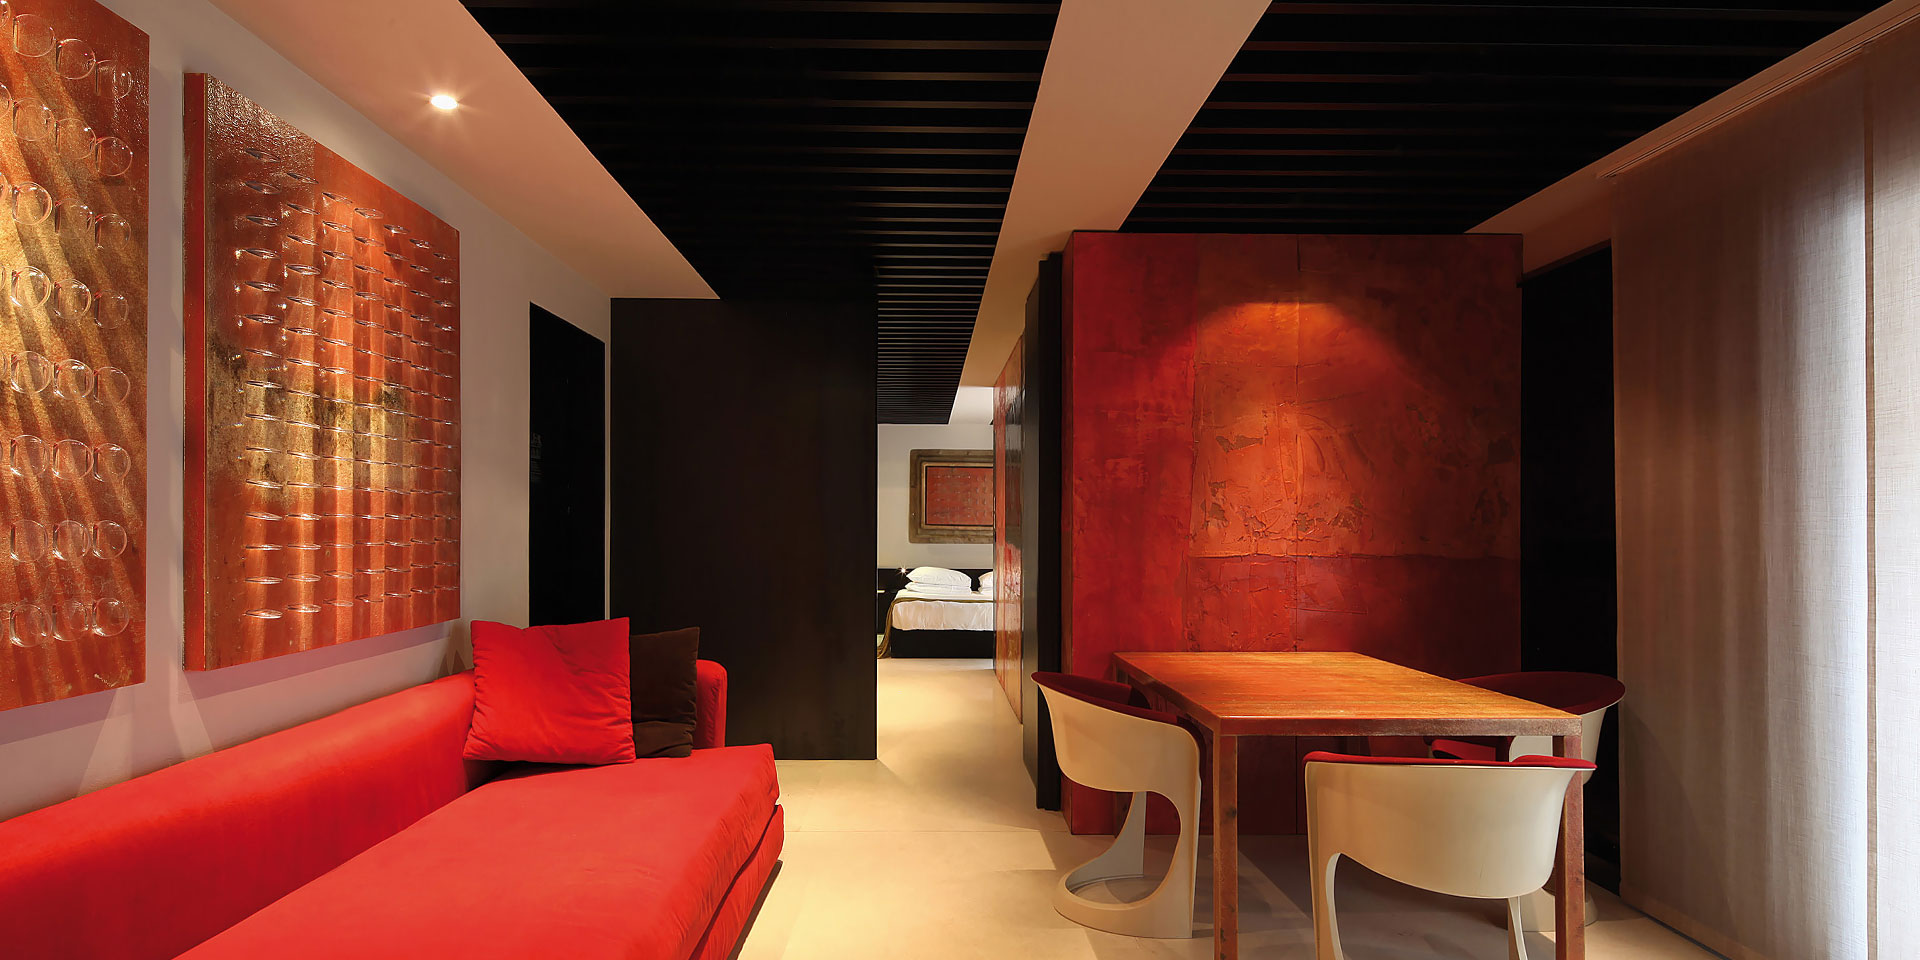 Straf-Milan-Italy-Europe-rooms.jpg